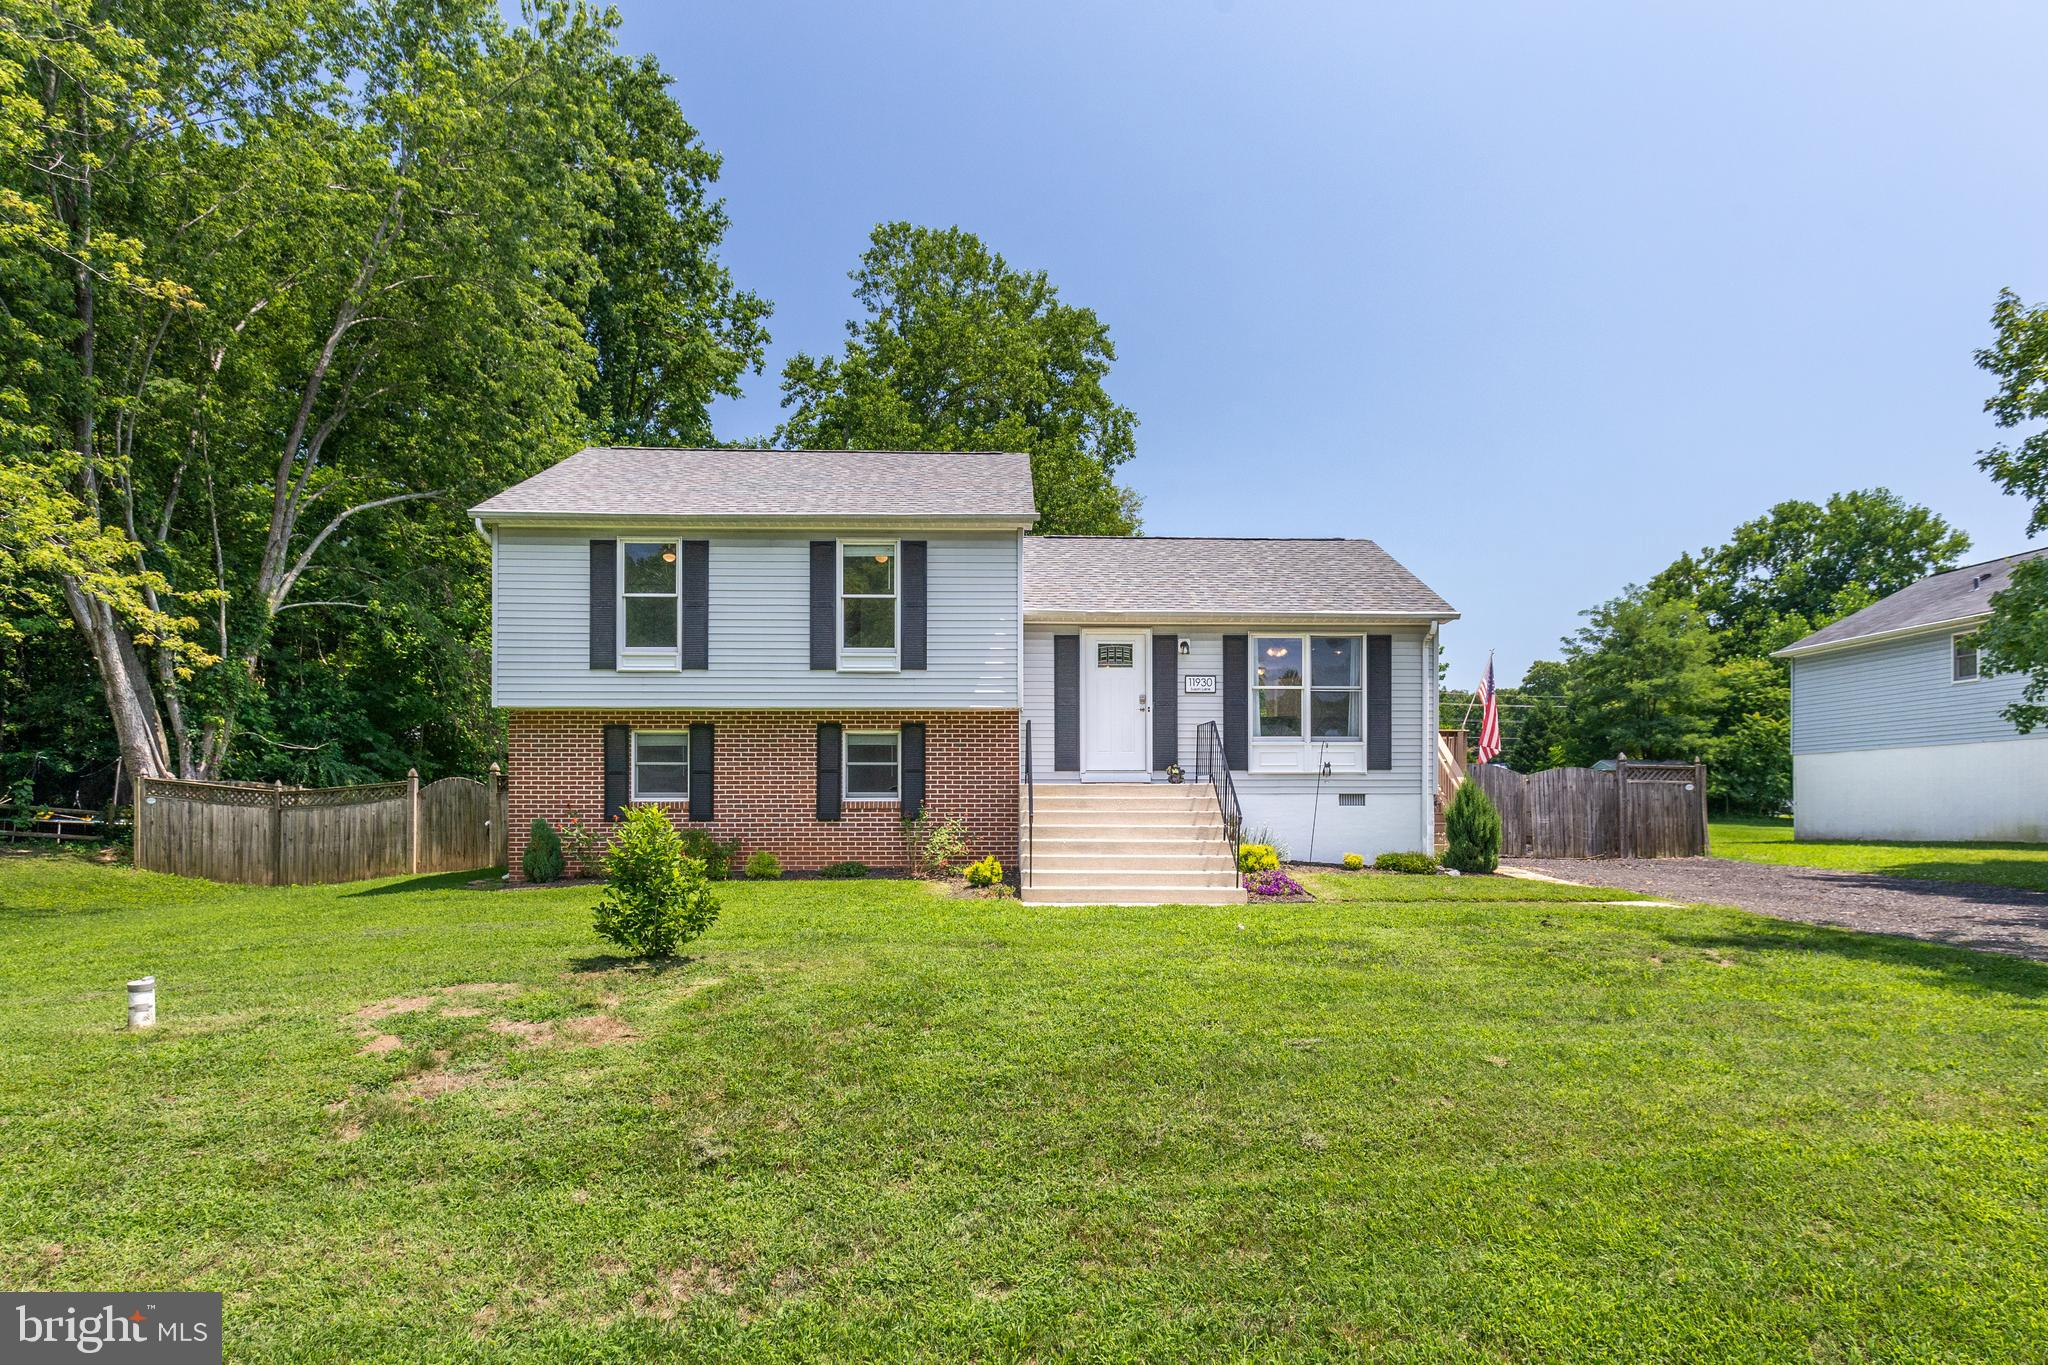 WOW! This home has been COMPLETELY renovated by the owners.